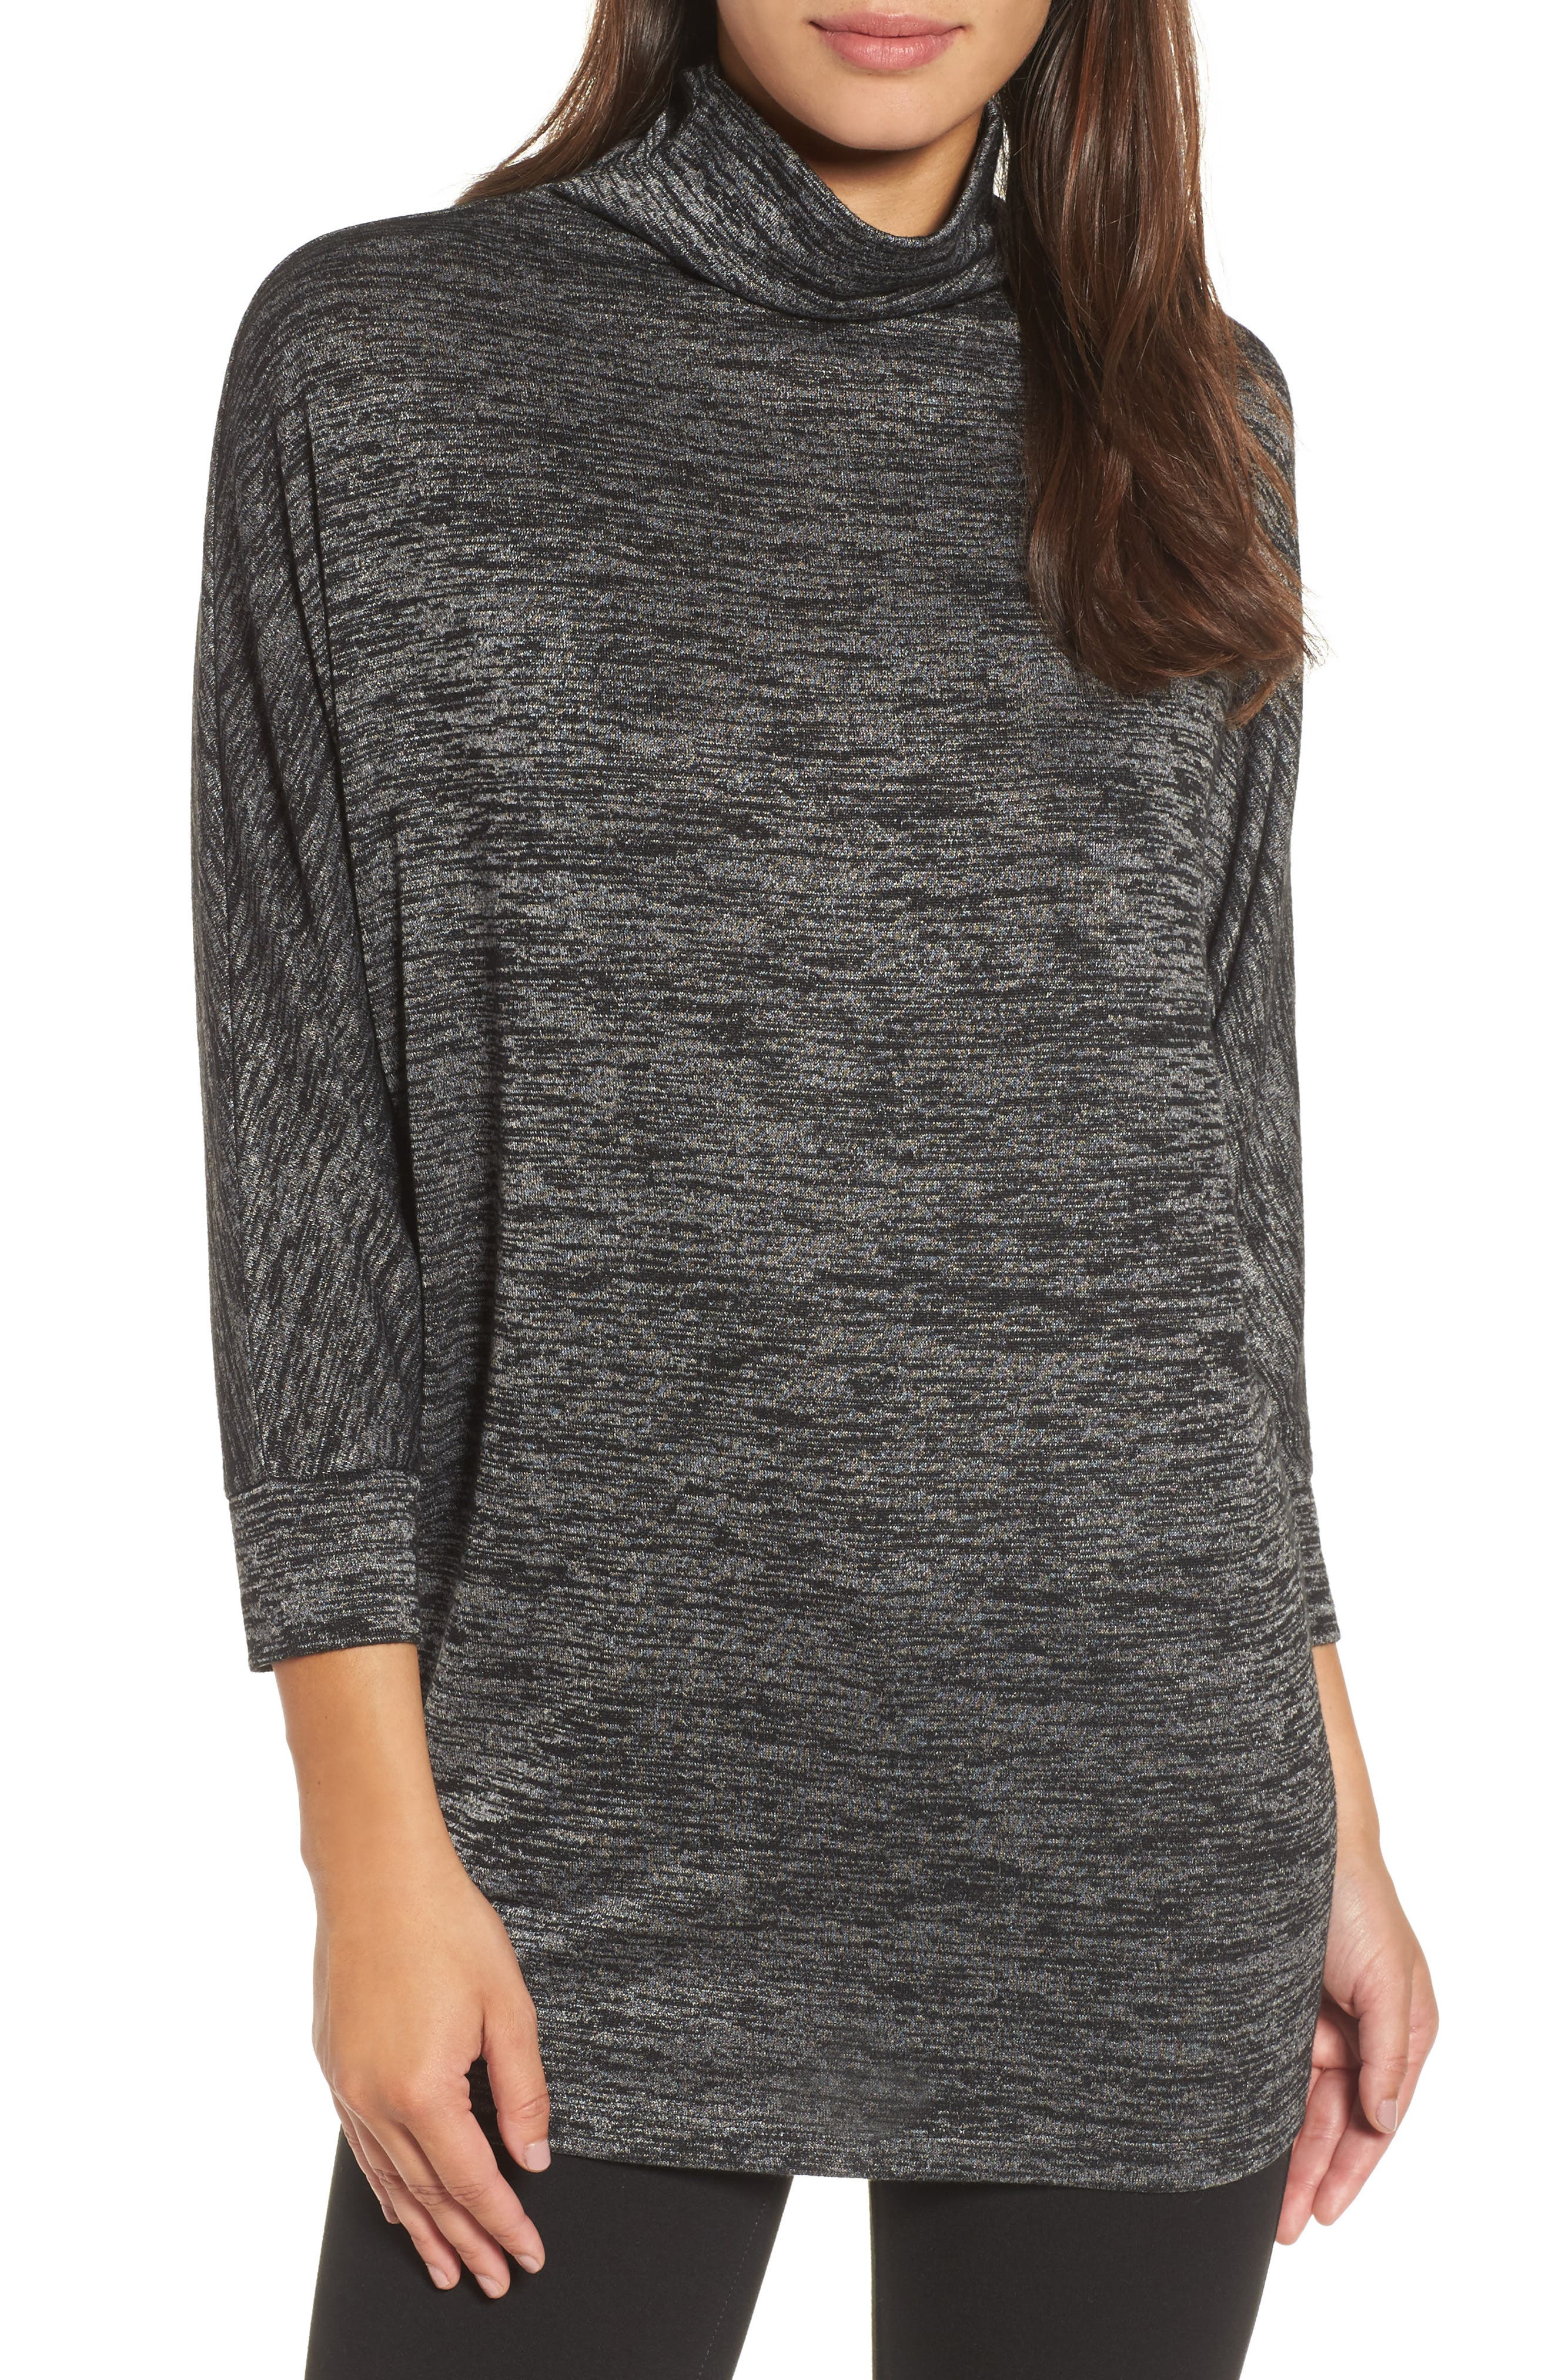 Every Occasion Mockneck Top,                         Main,                         color, Grey Mix